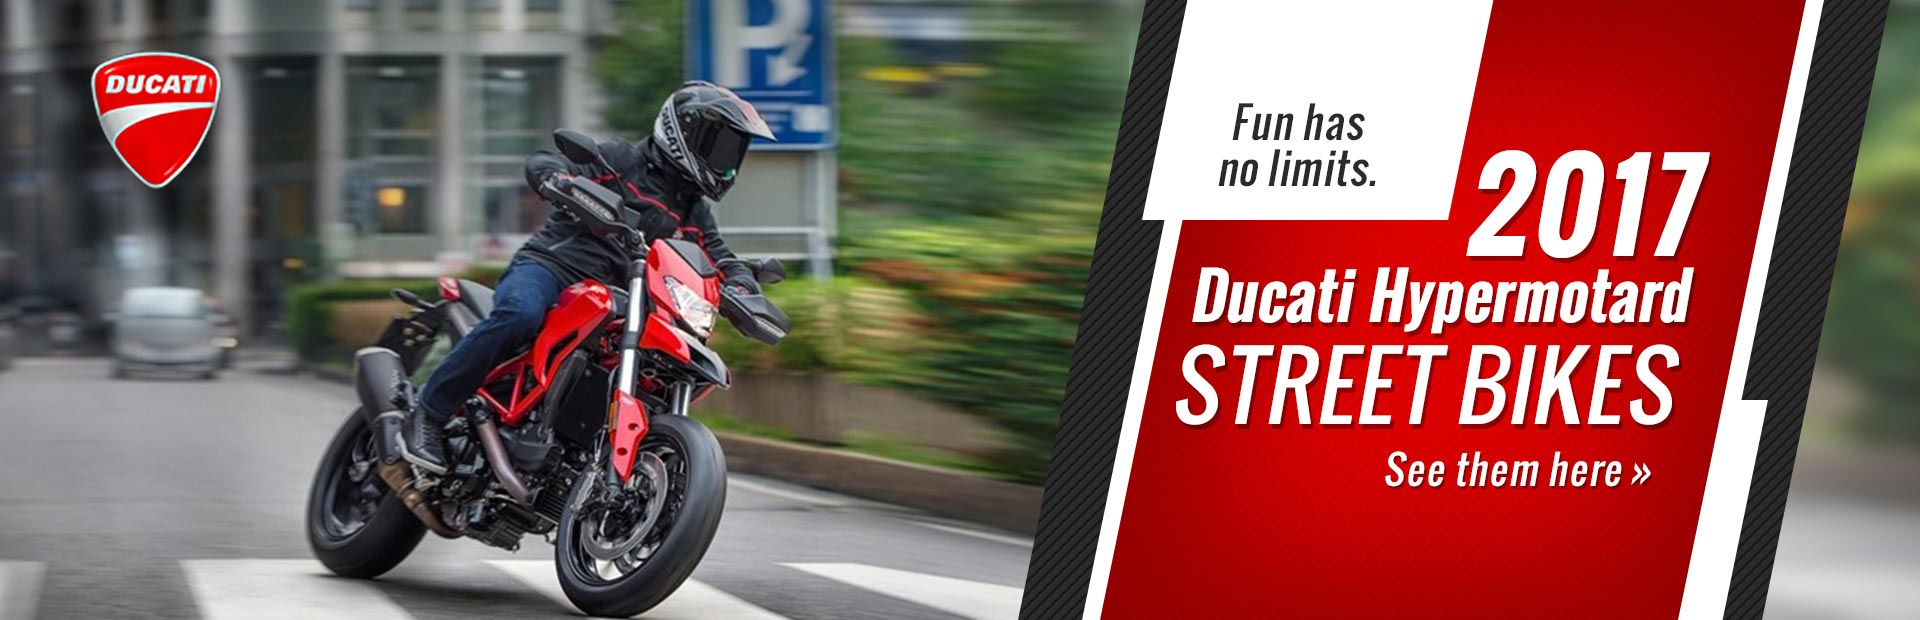 2017 Ducati Hypermotard Street Bikes: Click here to view the models.